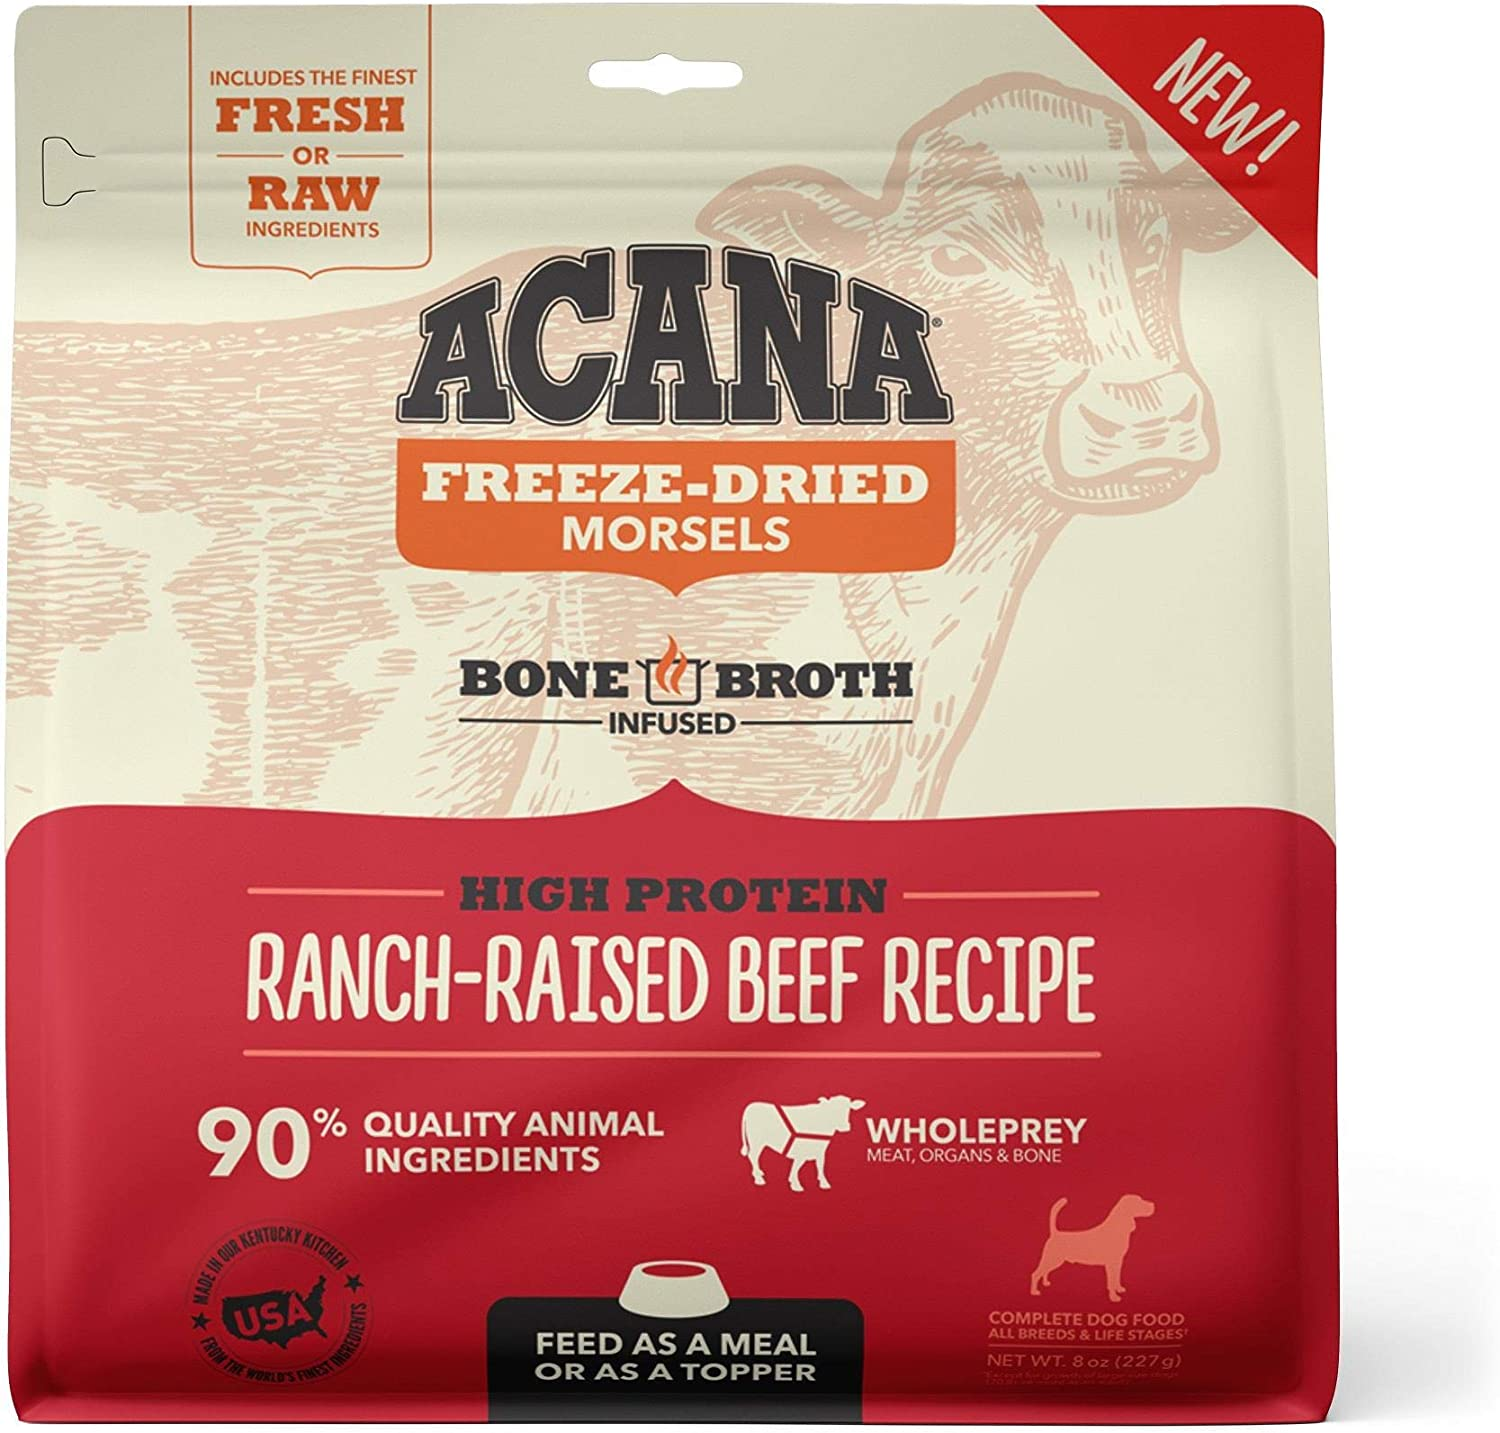 ACANA Grain Free High Protein Fresh & Raw Animal Ingredients Ranch-Raised Beef Recipe Freeze Dried Morsels Dog Food